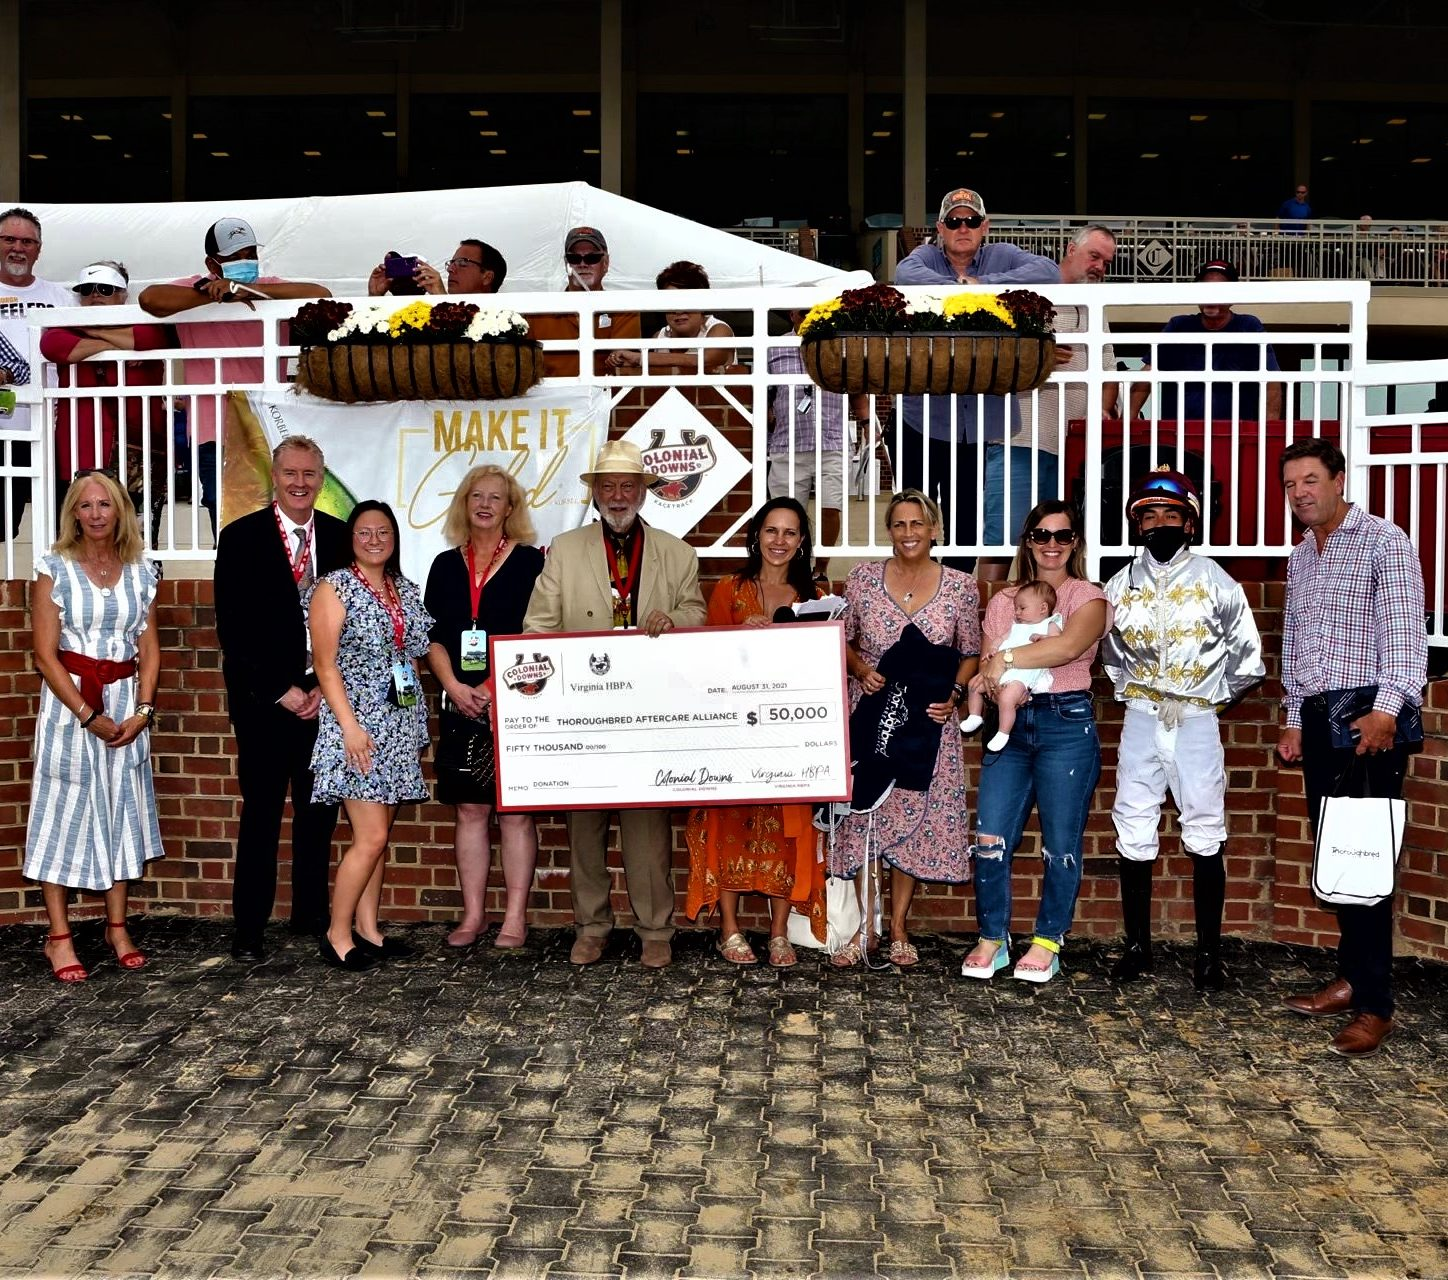 Colonial Downs, Virginia HBPA Present Check to TAA on Virginia Derby Day